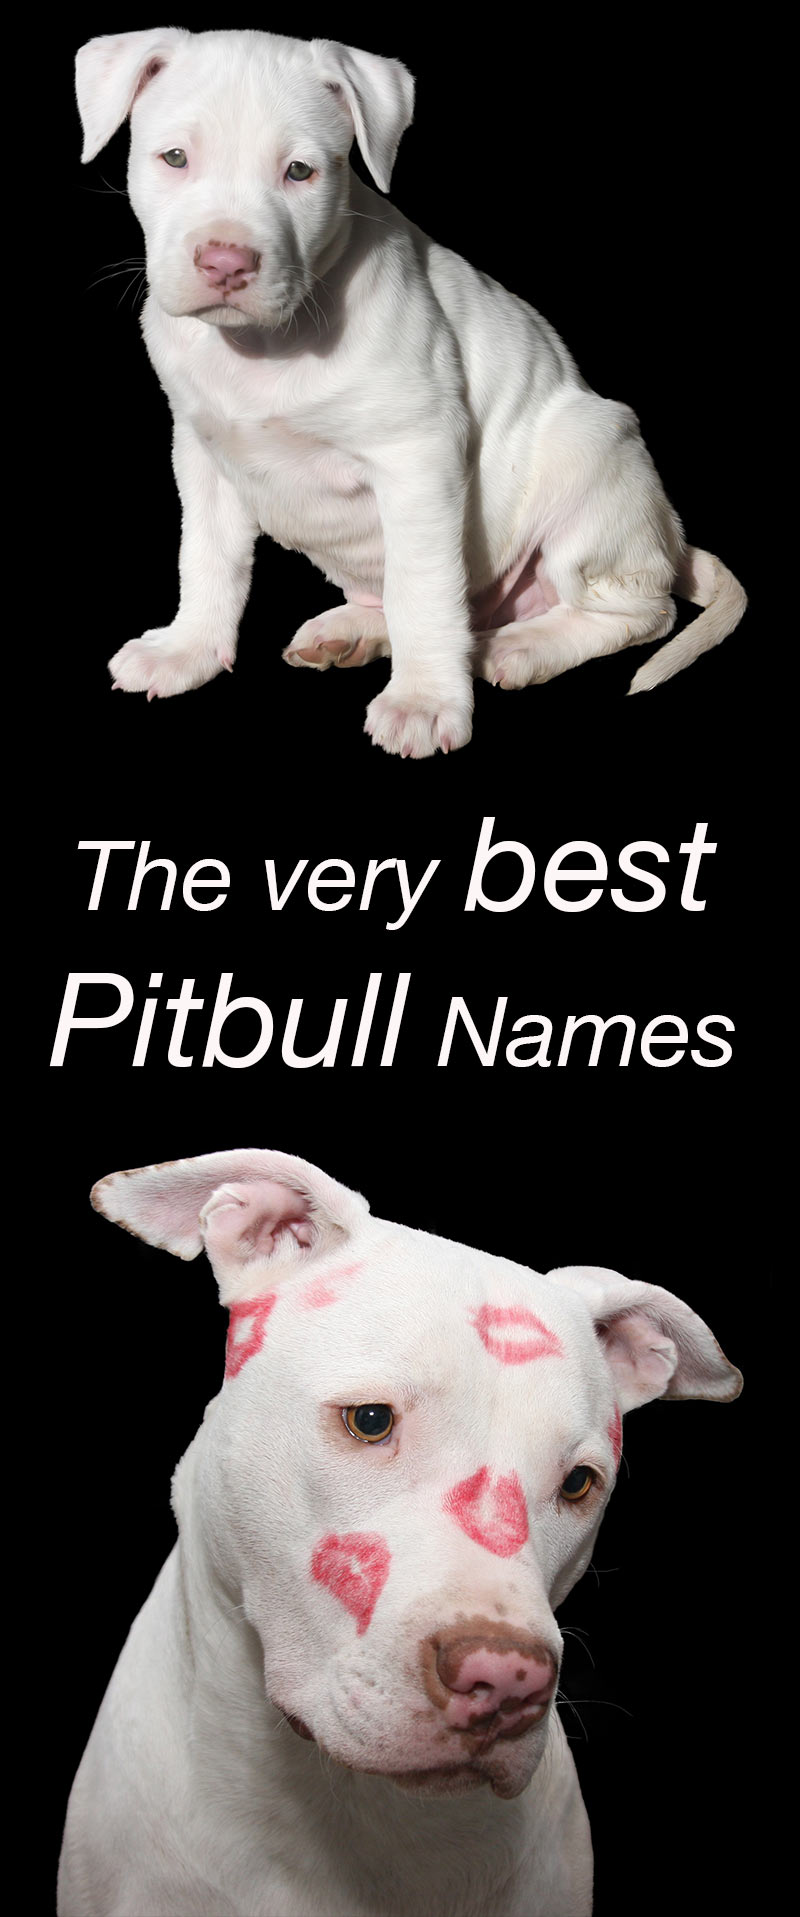 The Best Pitbull Names For Your New Puppy